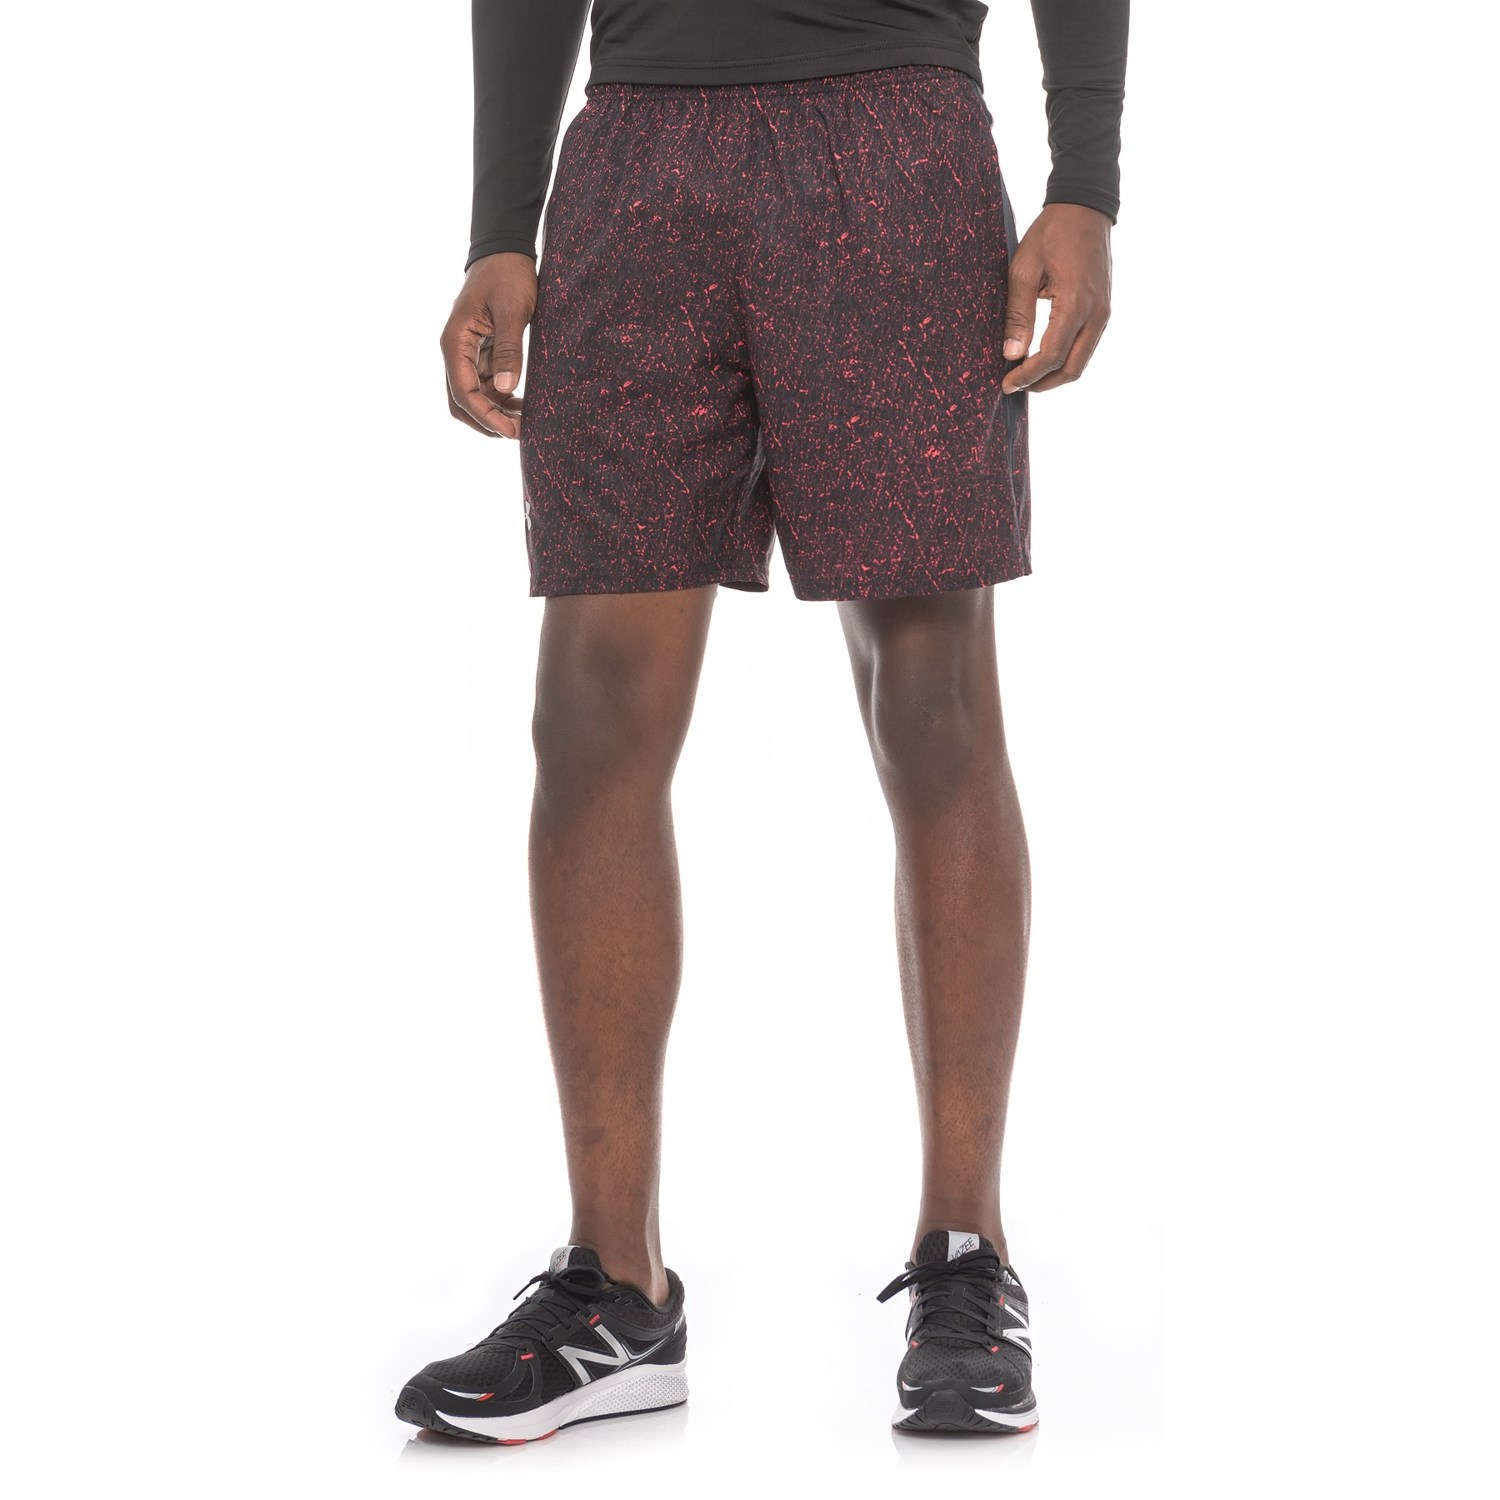 Under Armour Launch Sw Printed Shorts 7â Built In Brief For